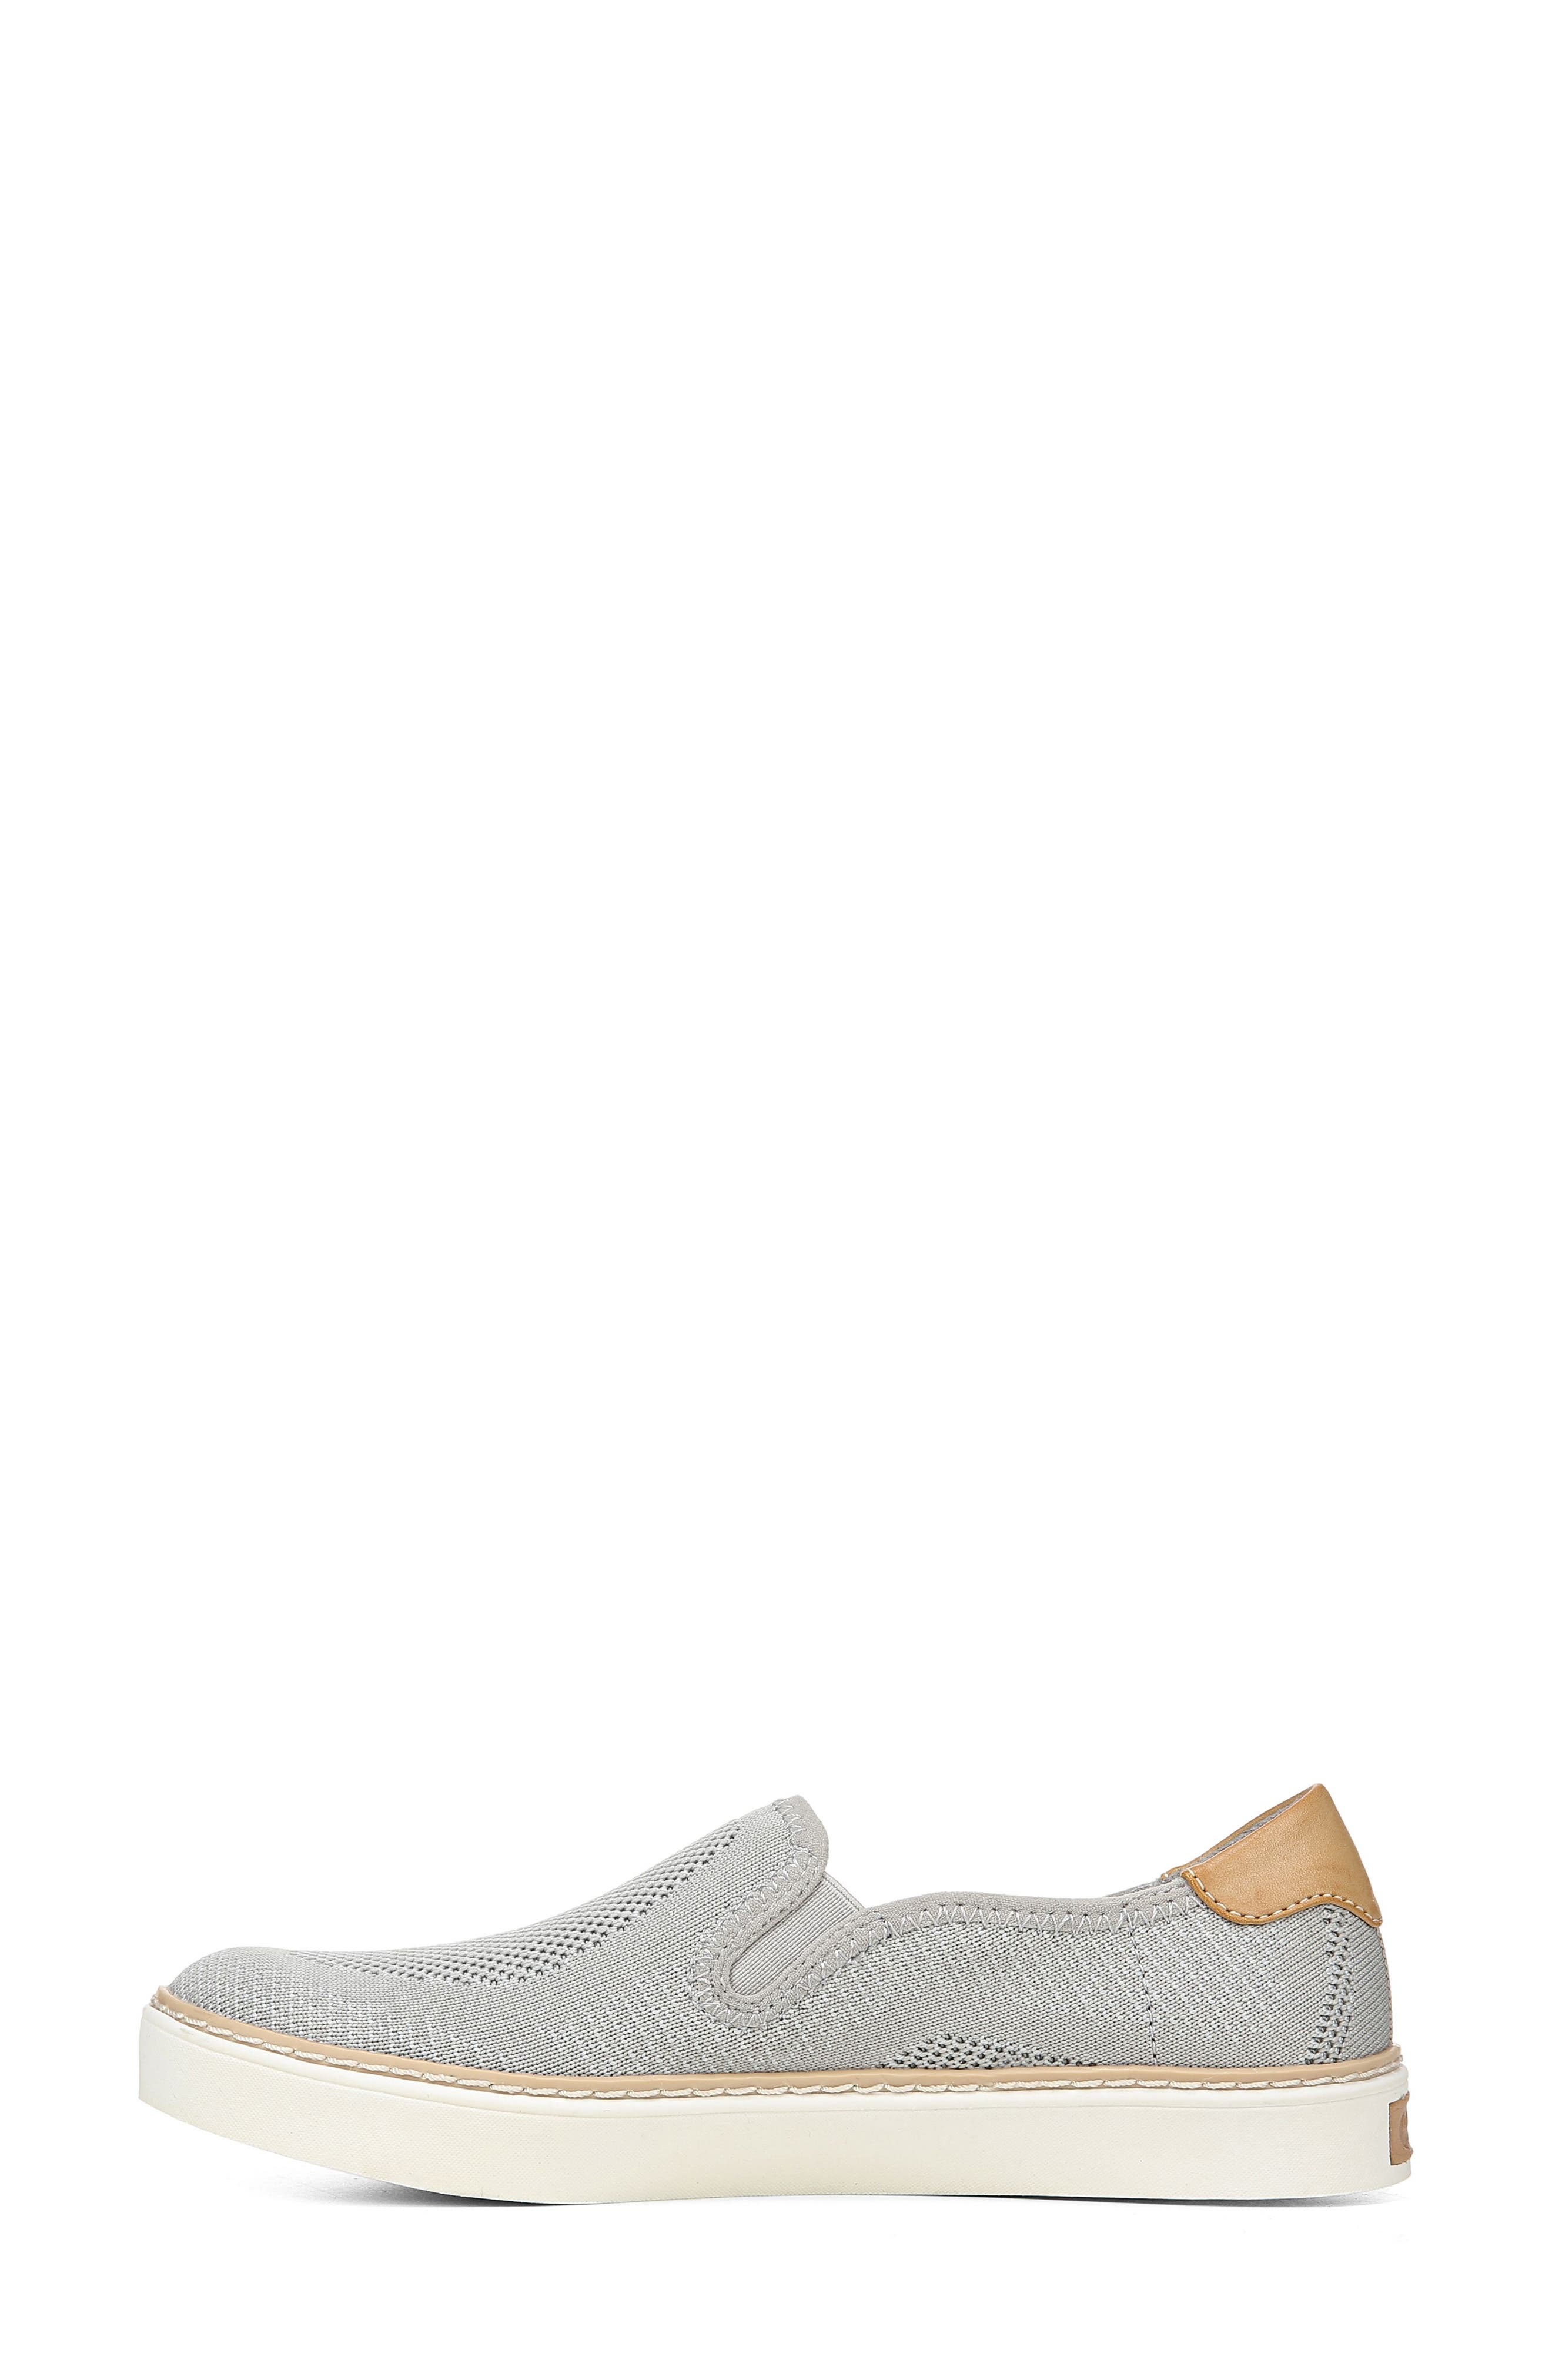 ,                             Madi Slip-On Sneaker,                             Alternate thumbnail 9, color,                             GREY KNIT FABRIC